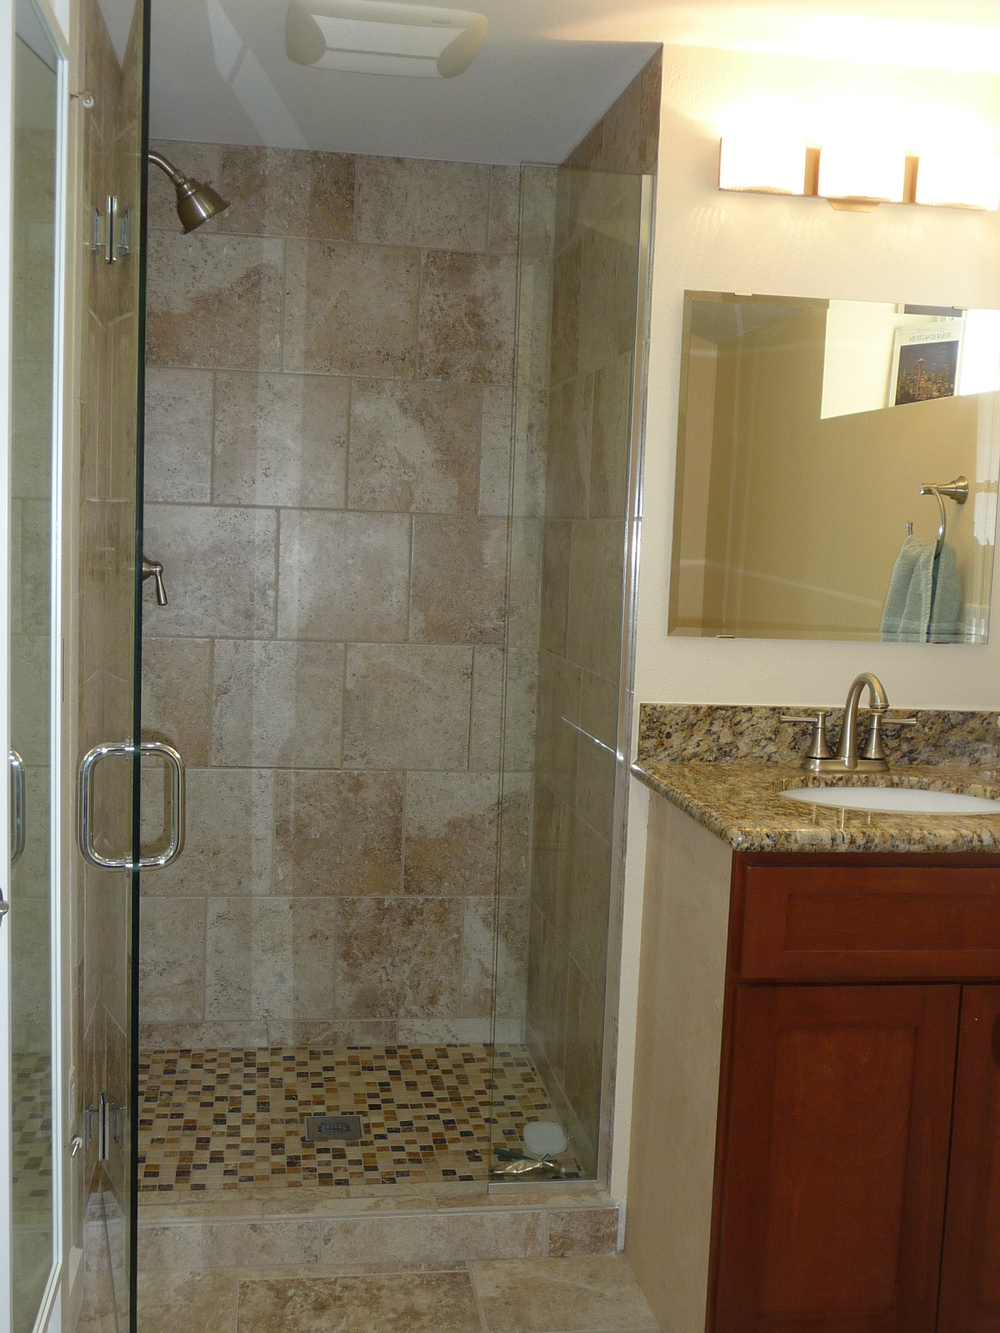 13098 Basement Bathroom.JPG